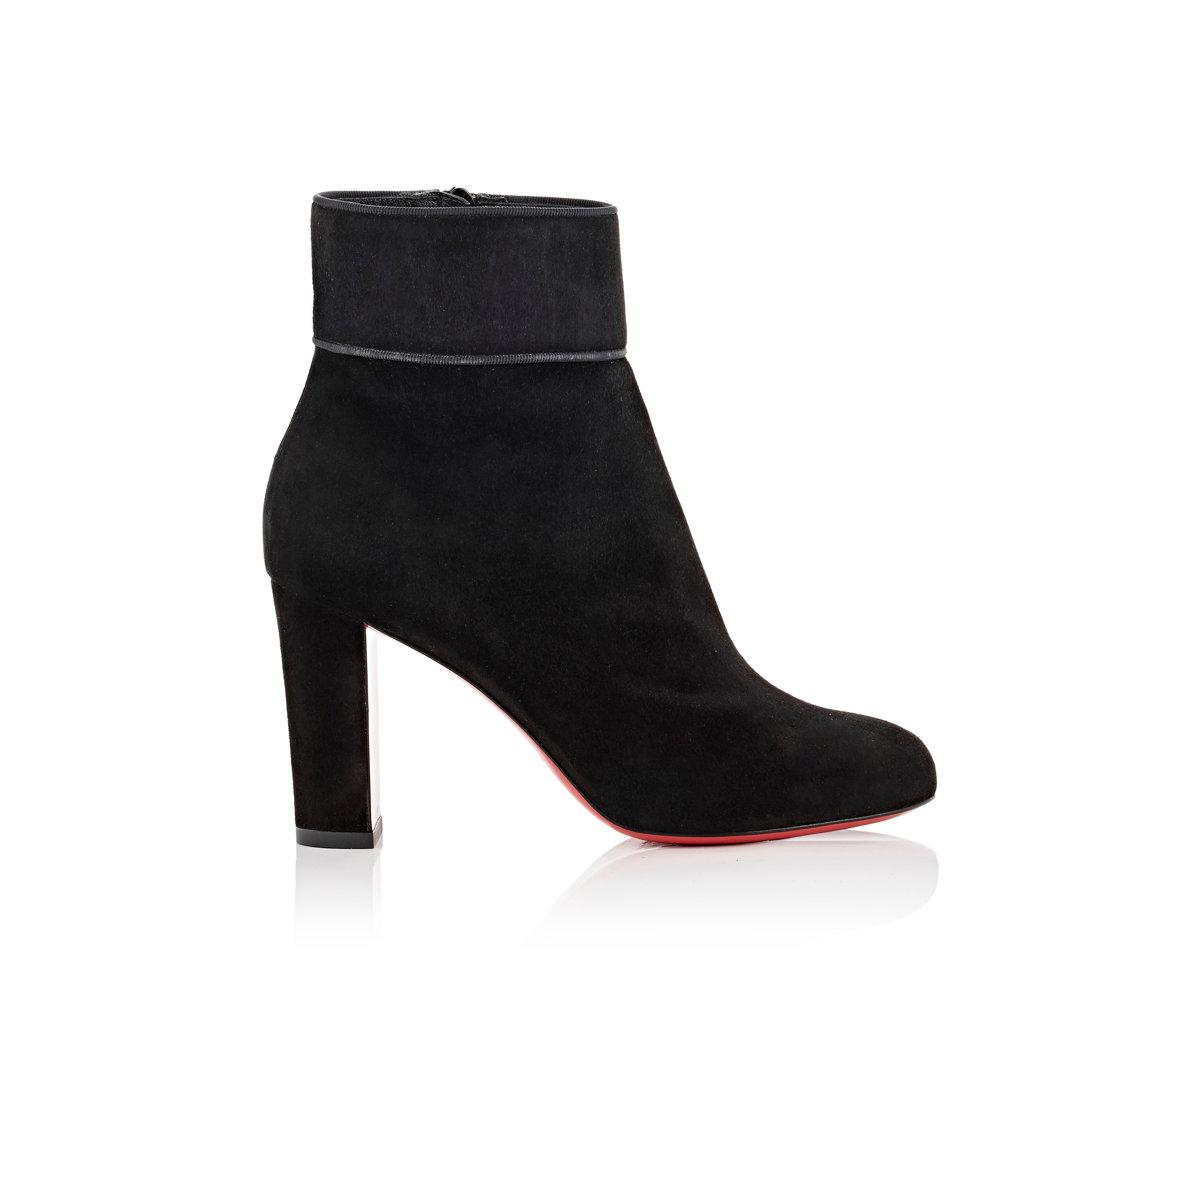 new arrival 41553 c1ac0 Women's Black Moulamax Suede Ankle Boots